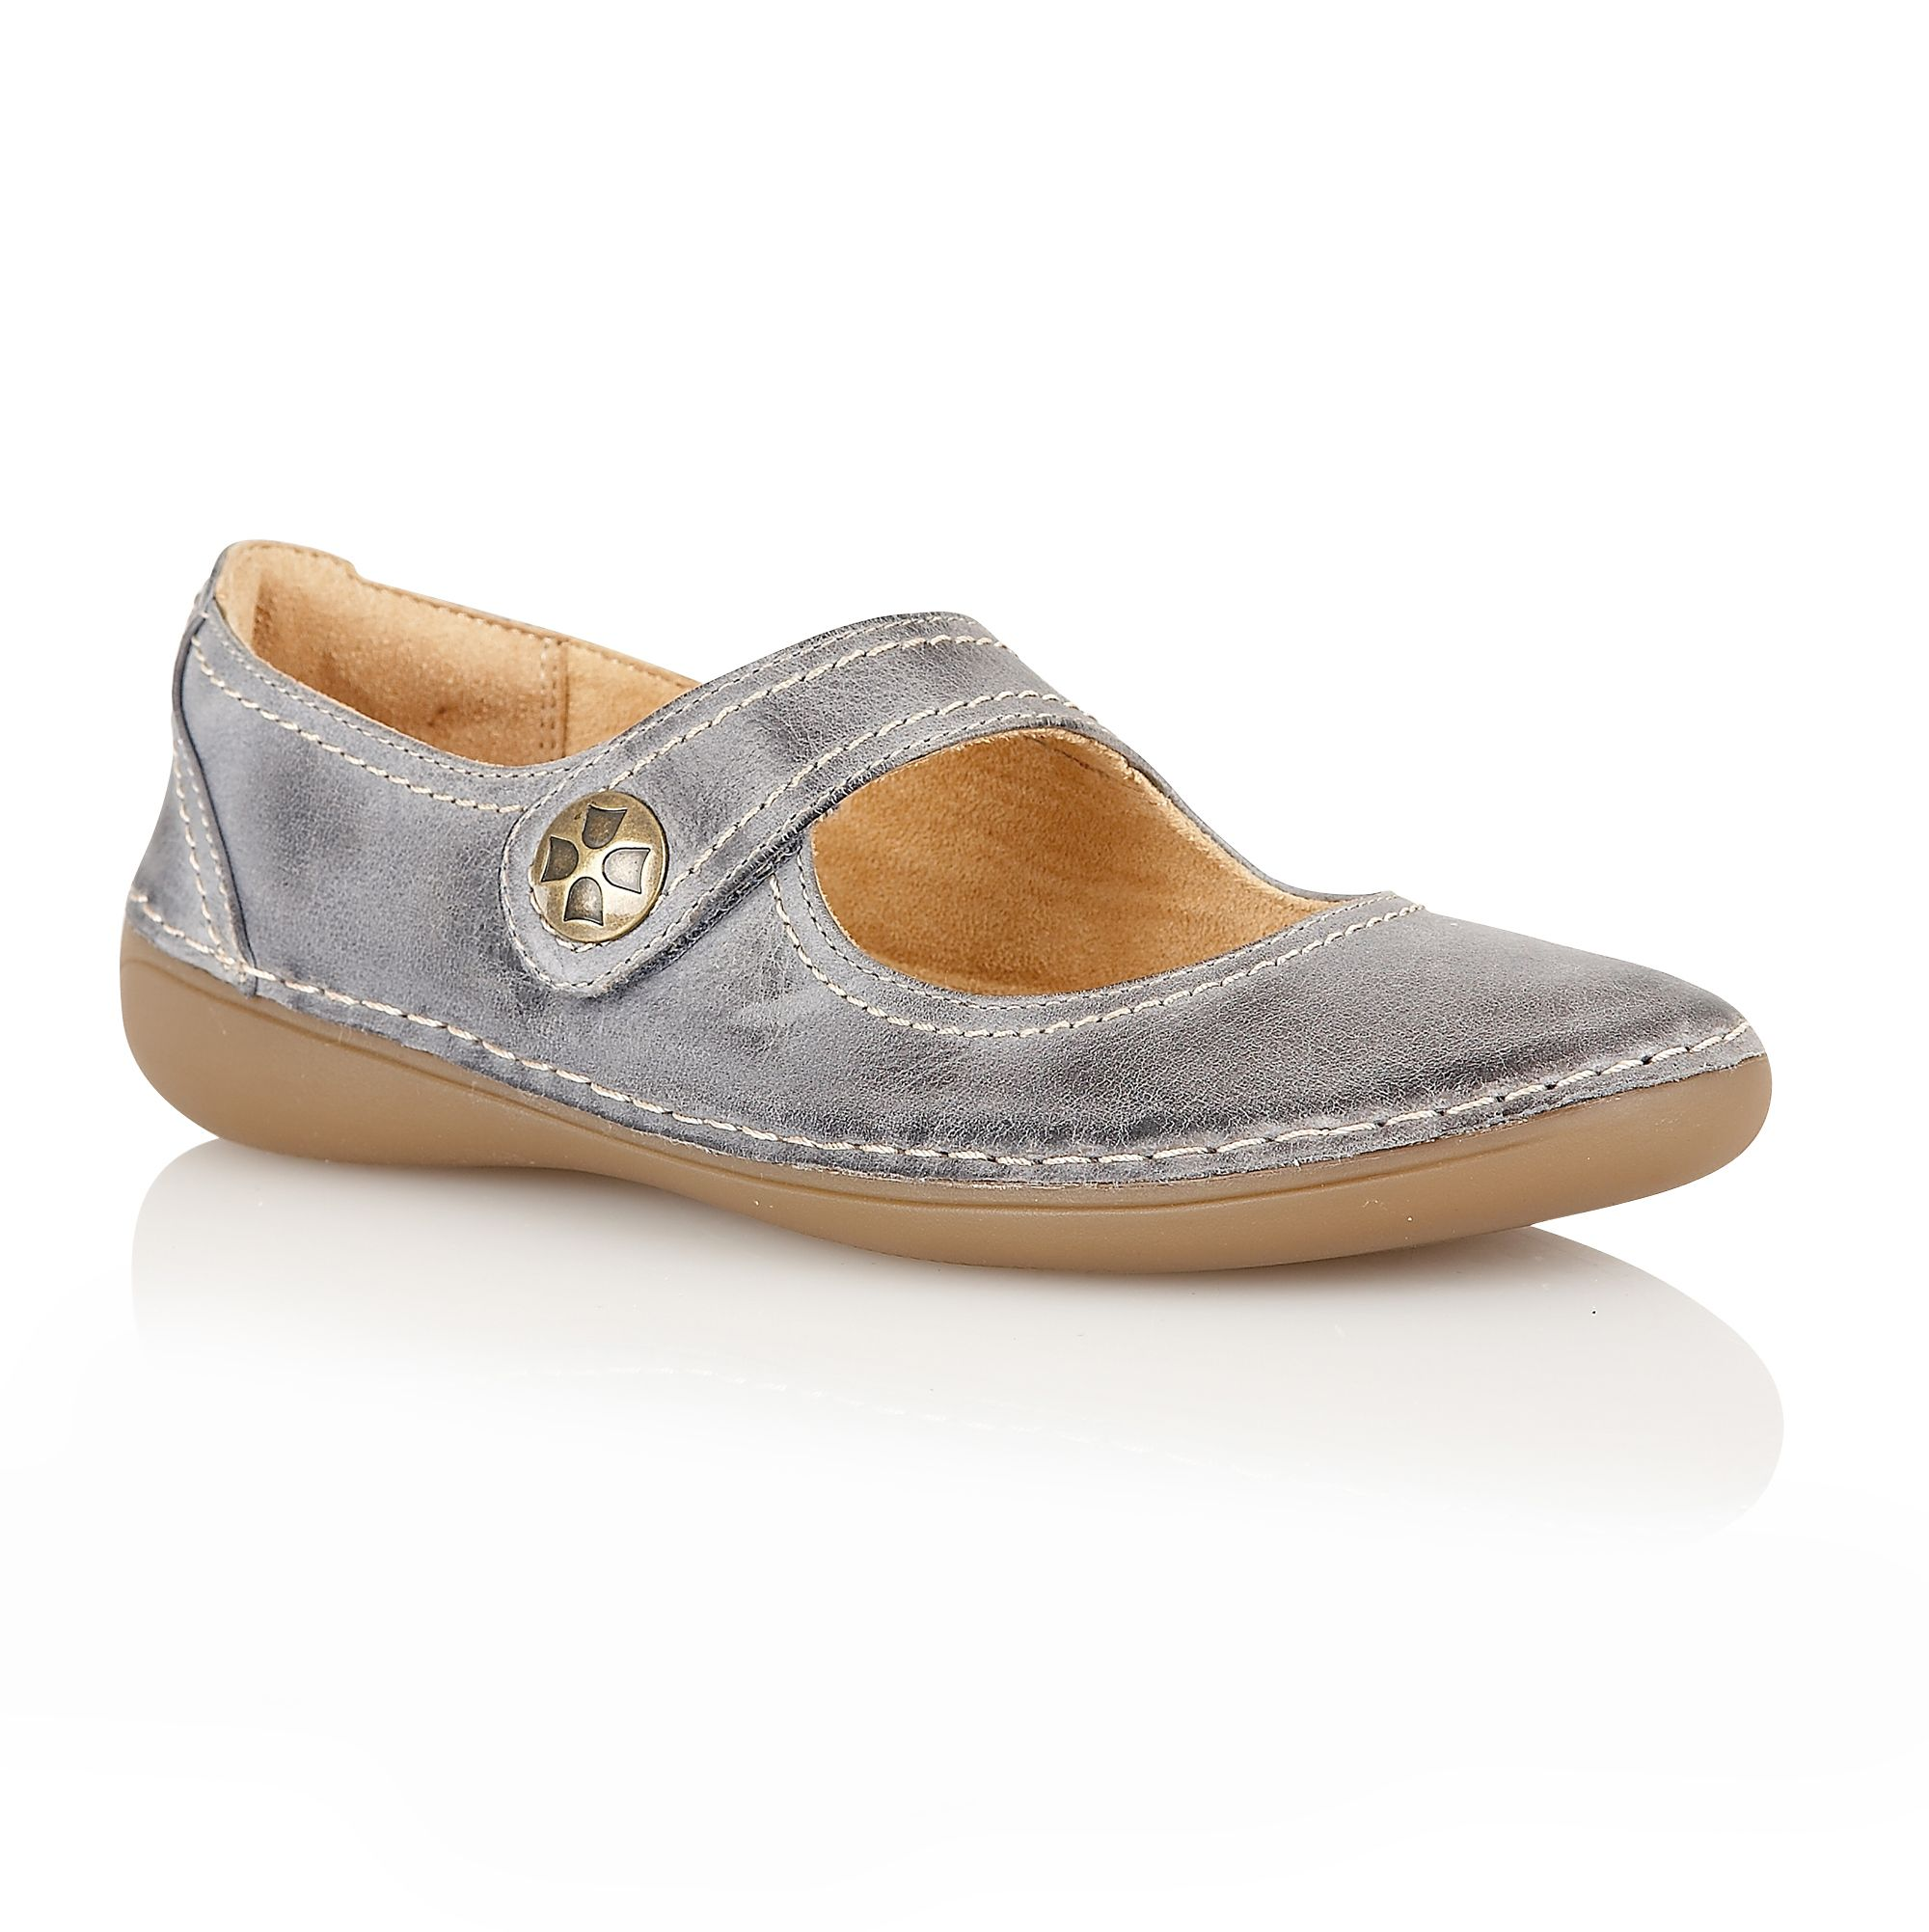 Kansas casual shoes